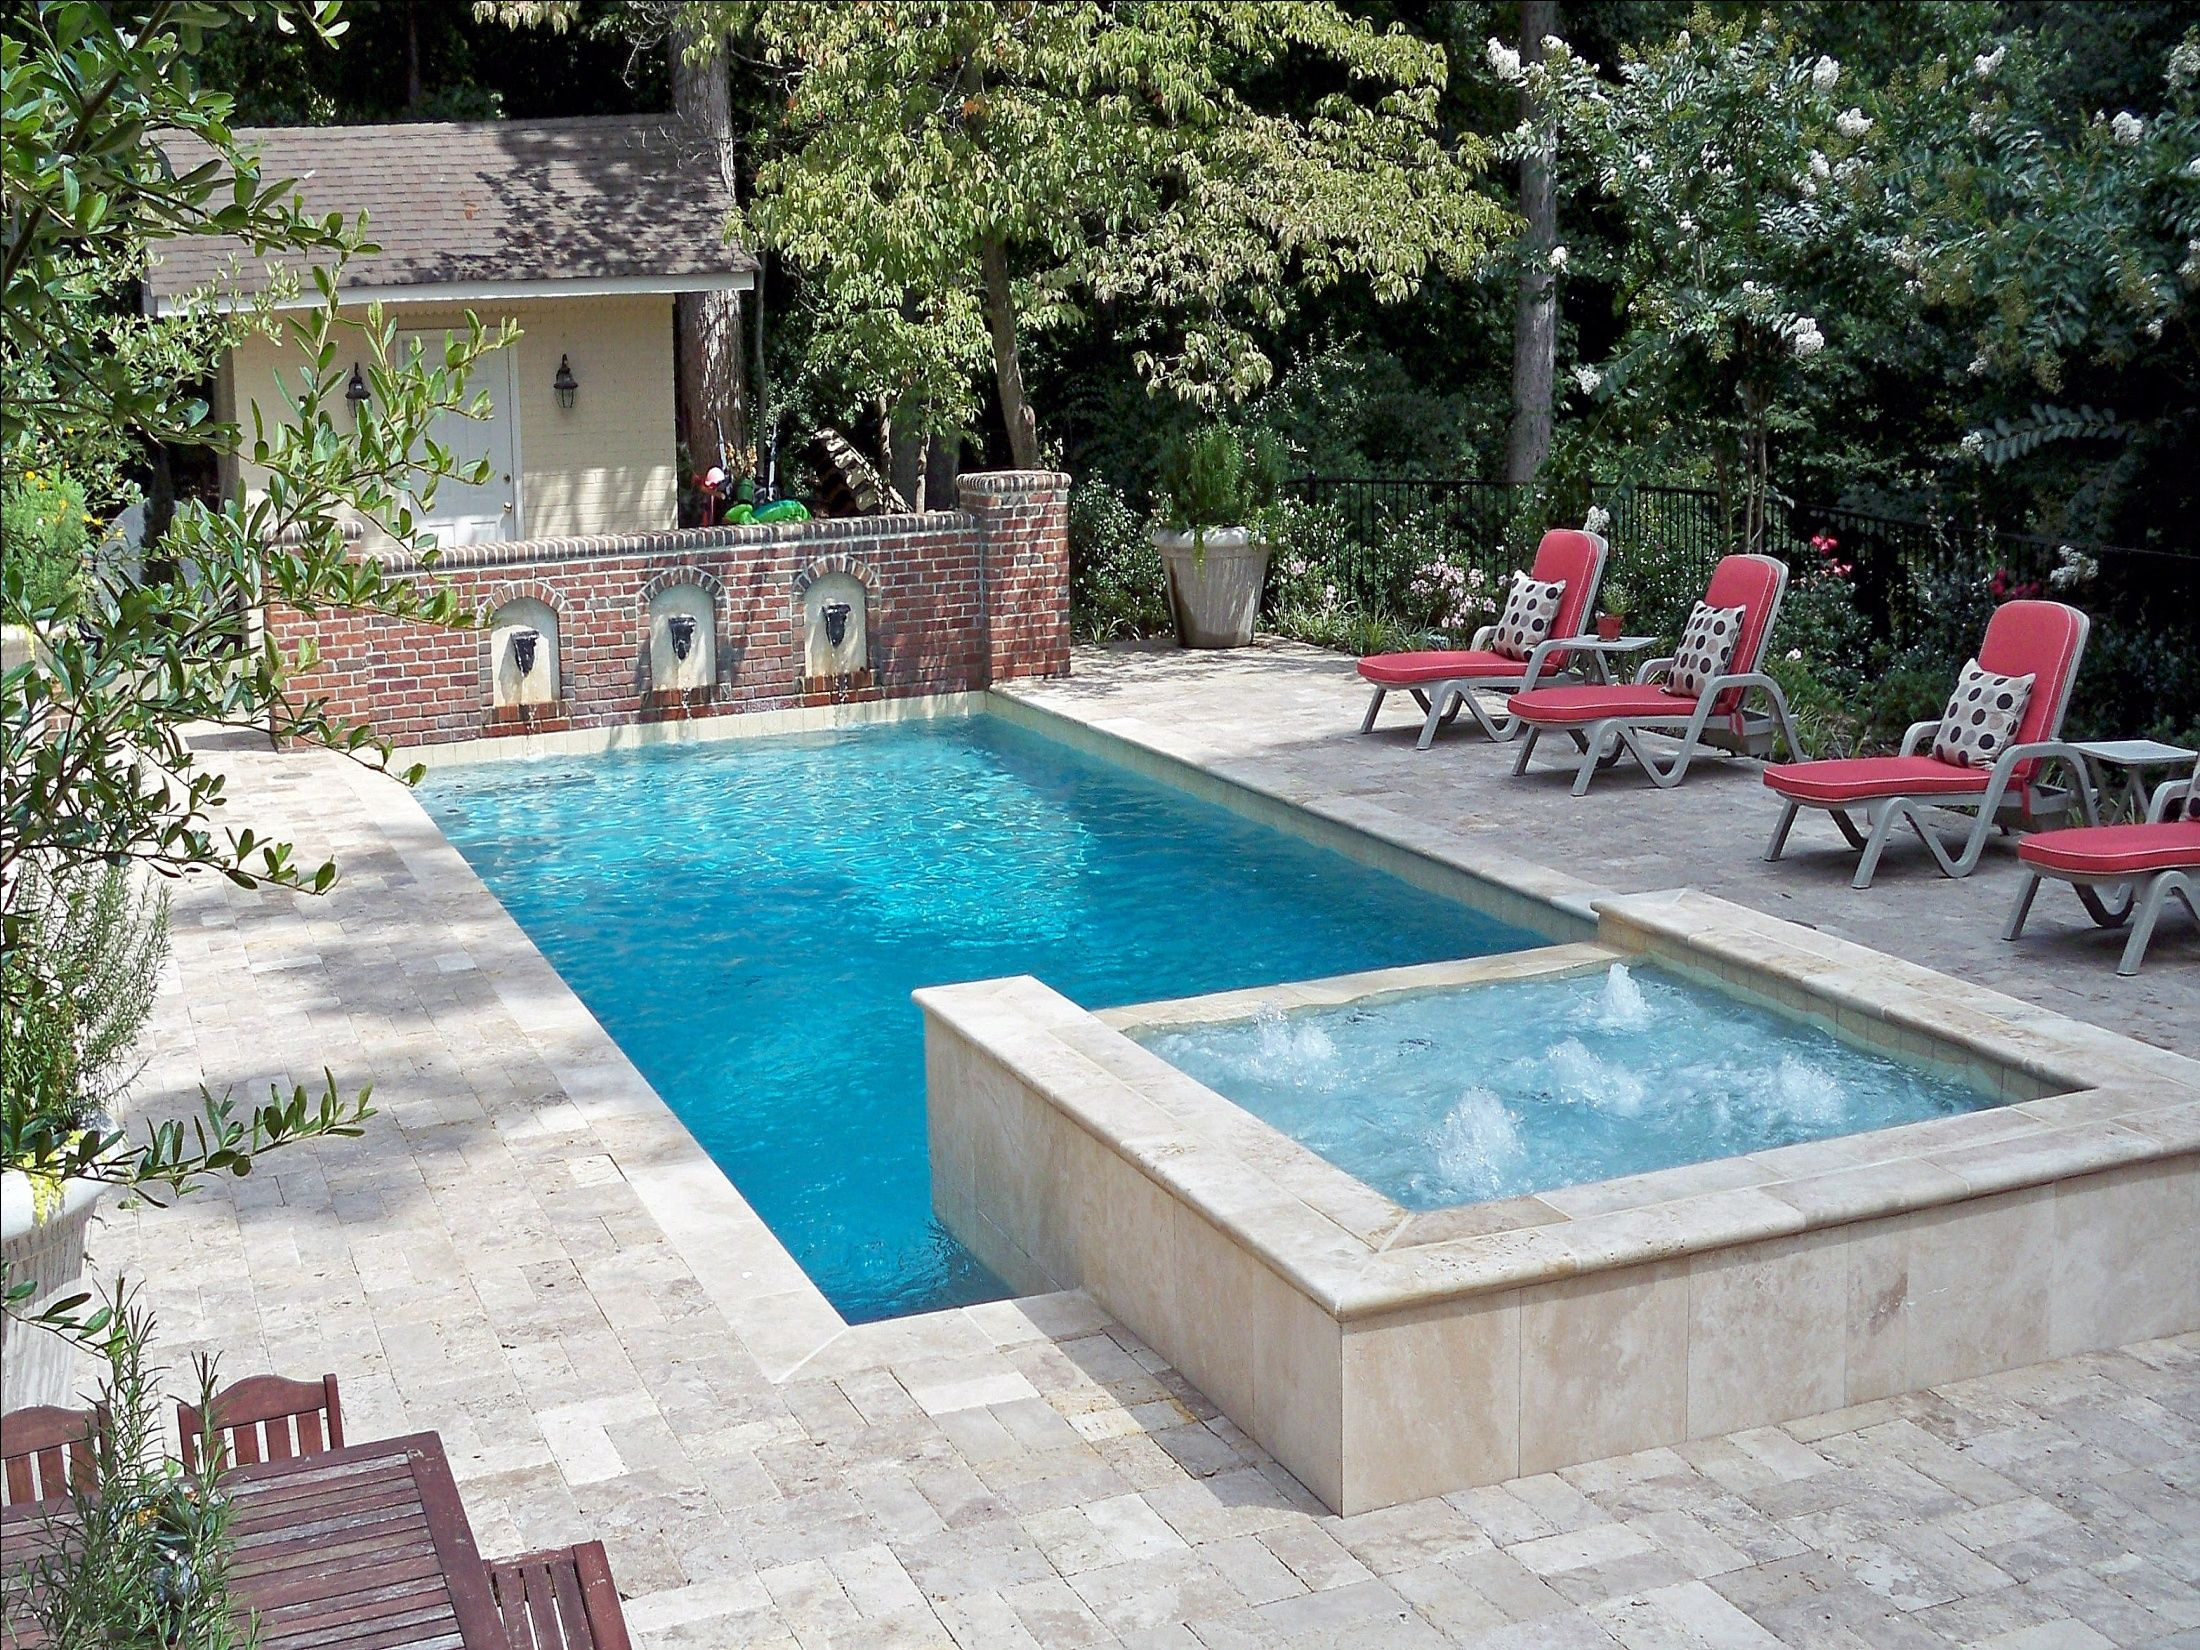 Merveilleux Pool Scuppers | Pool Design U0026 Construction By Gress Inc .   Raliegh, North  Carolina